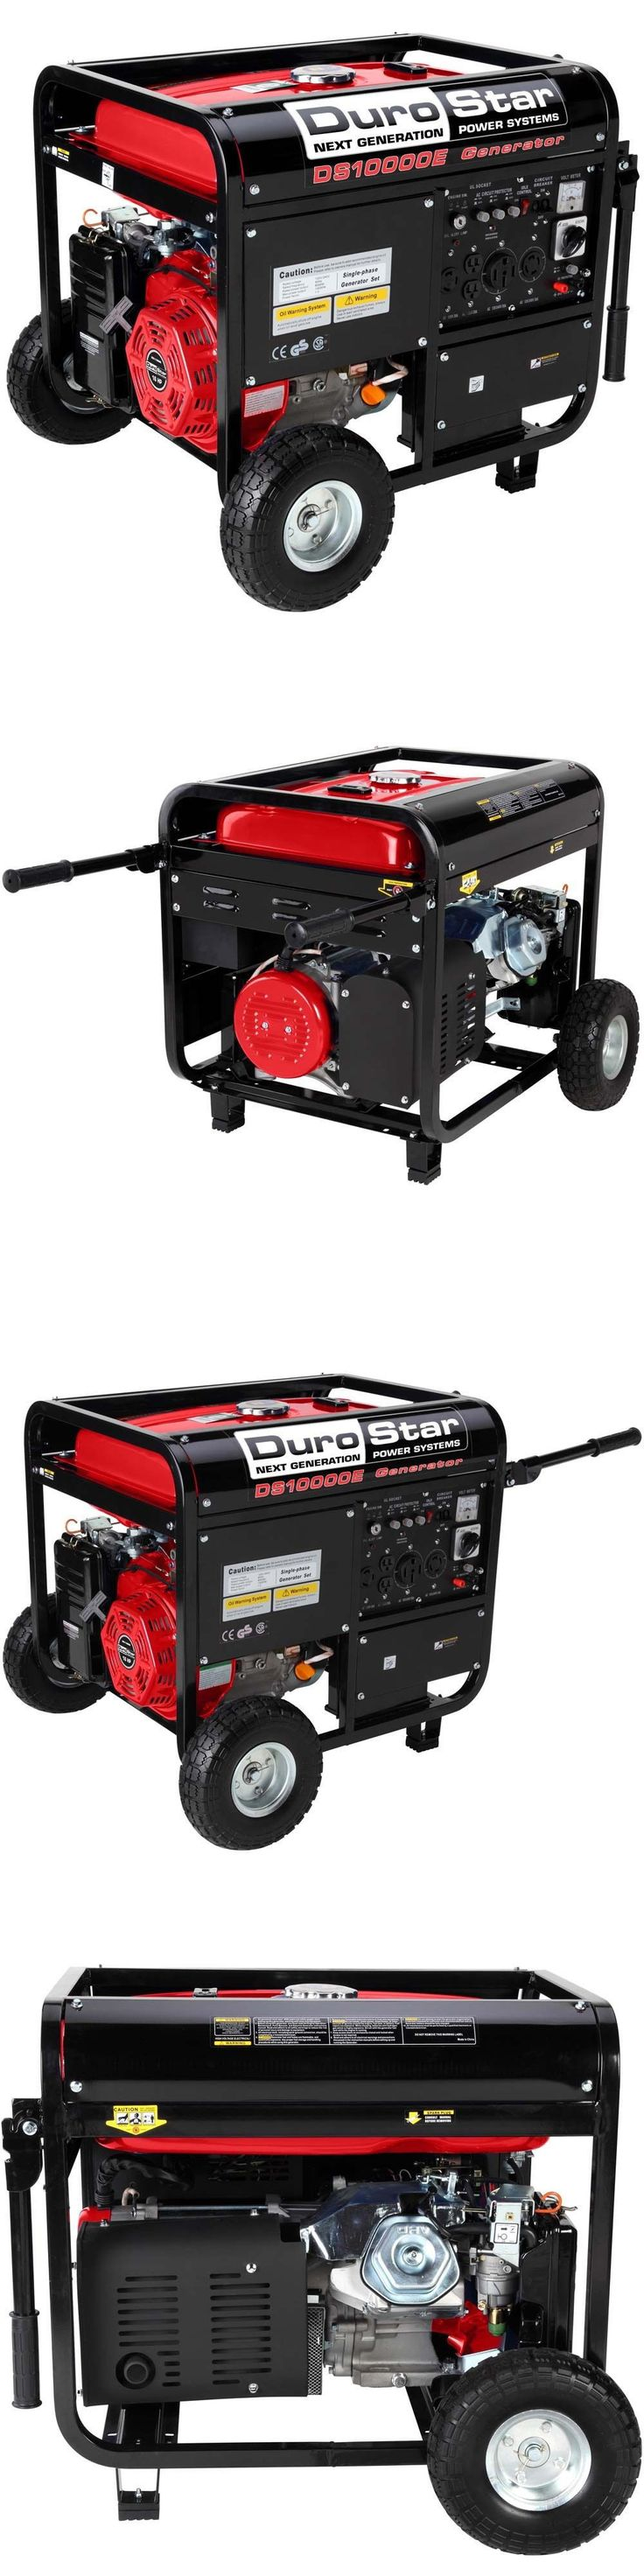 Generators 33082: Durostar 10000W Portable Gas Electric Start Generator Standby Camping Ds10000e -> BUY IT NOW ONLY: $499 on eBay!